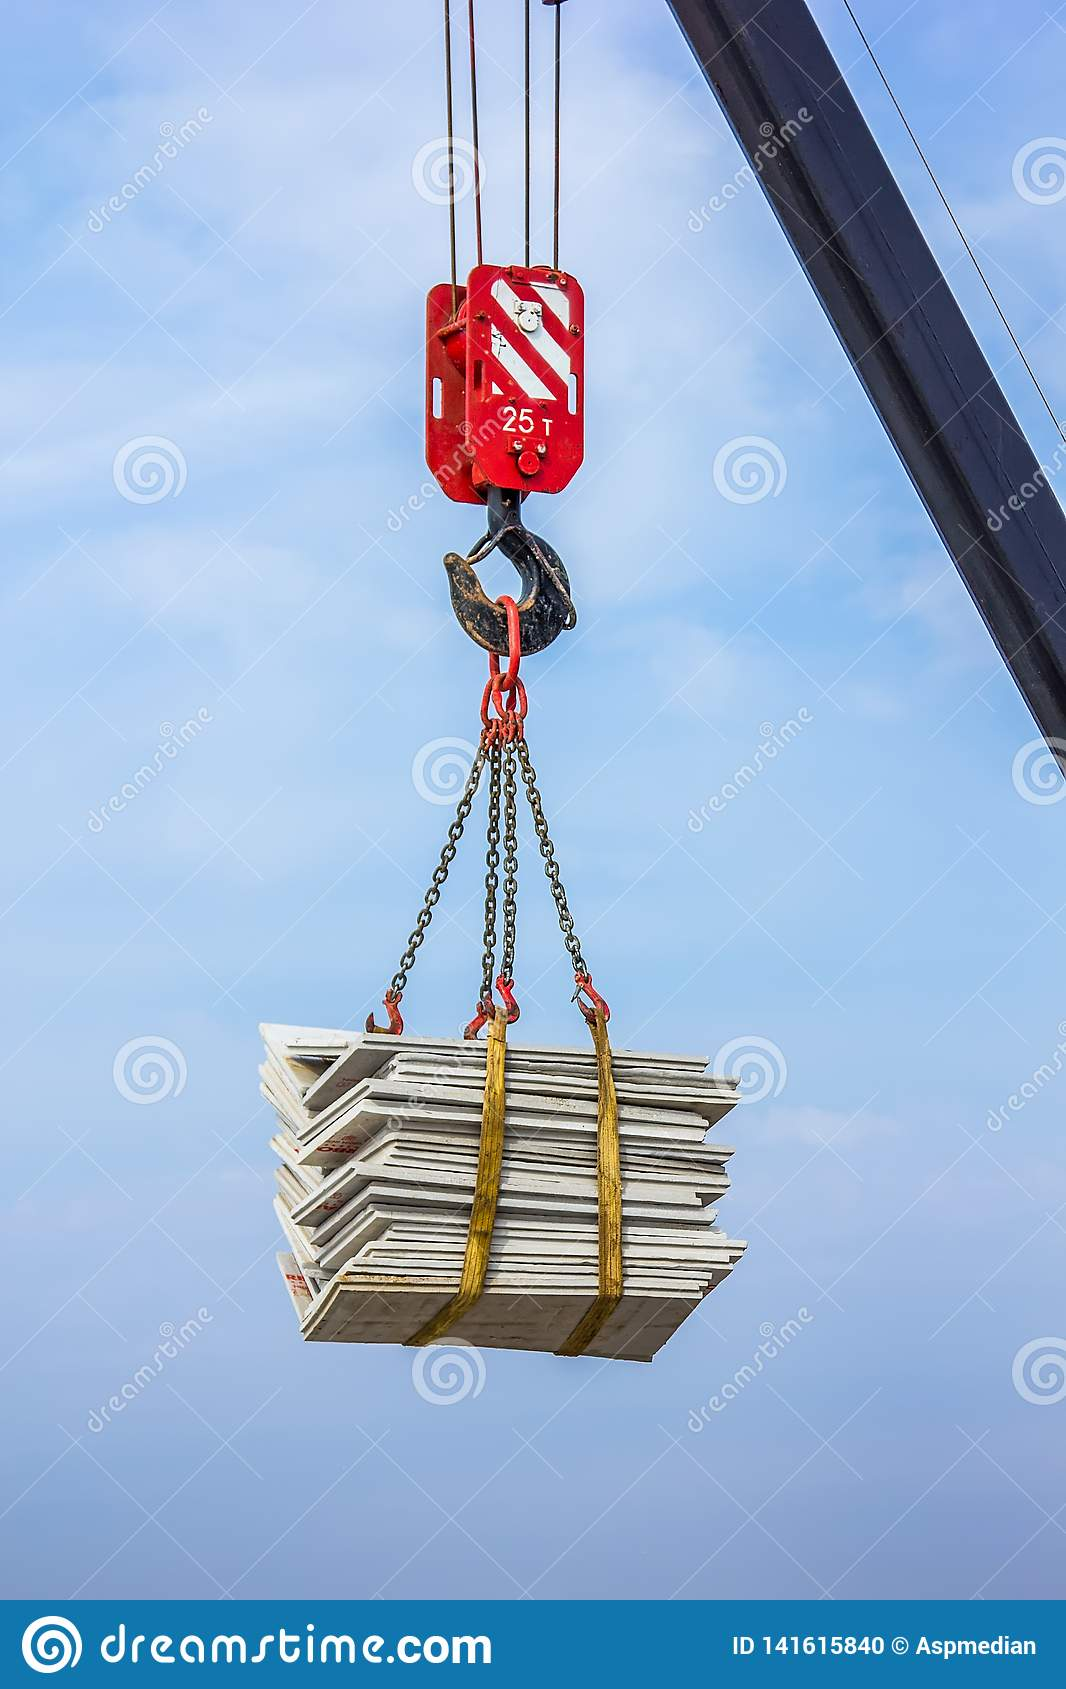 The crane lifts a heavy load on a hook